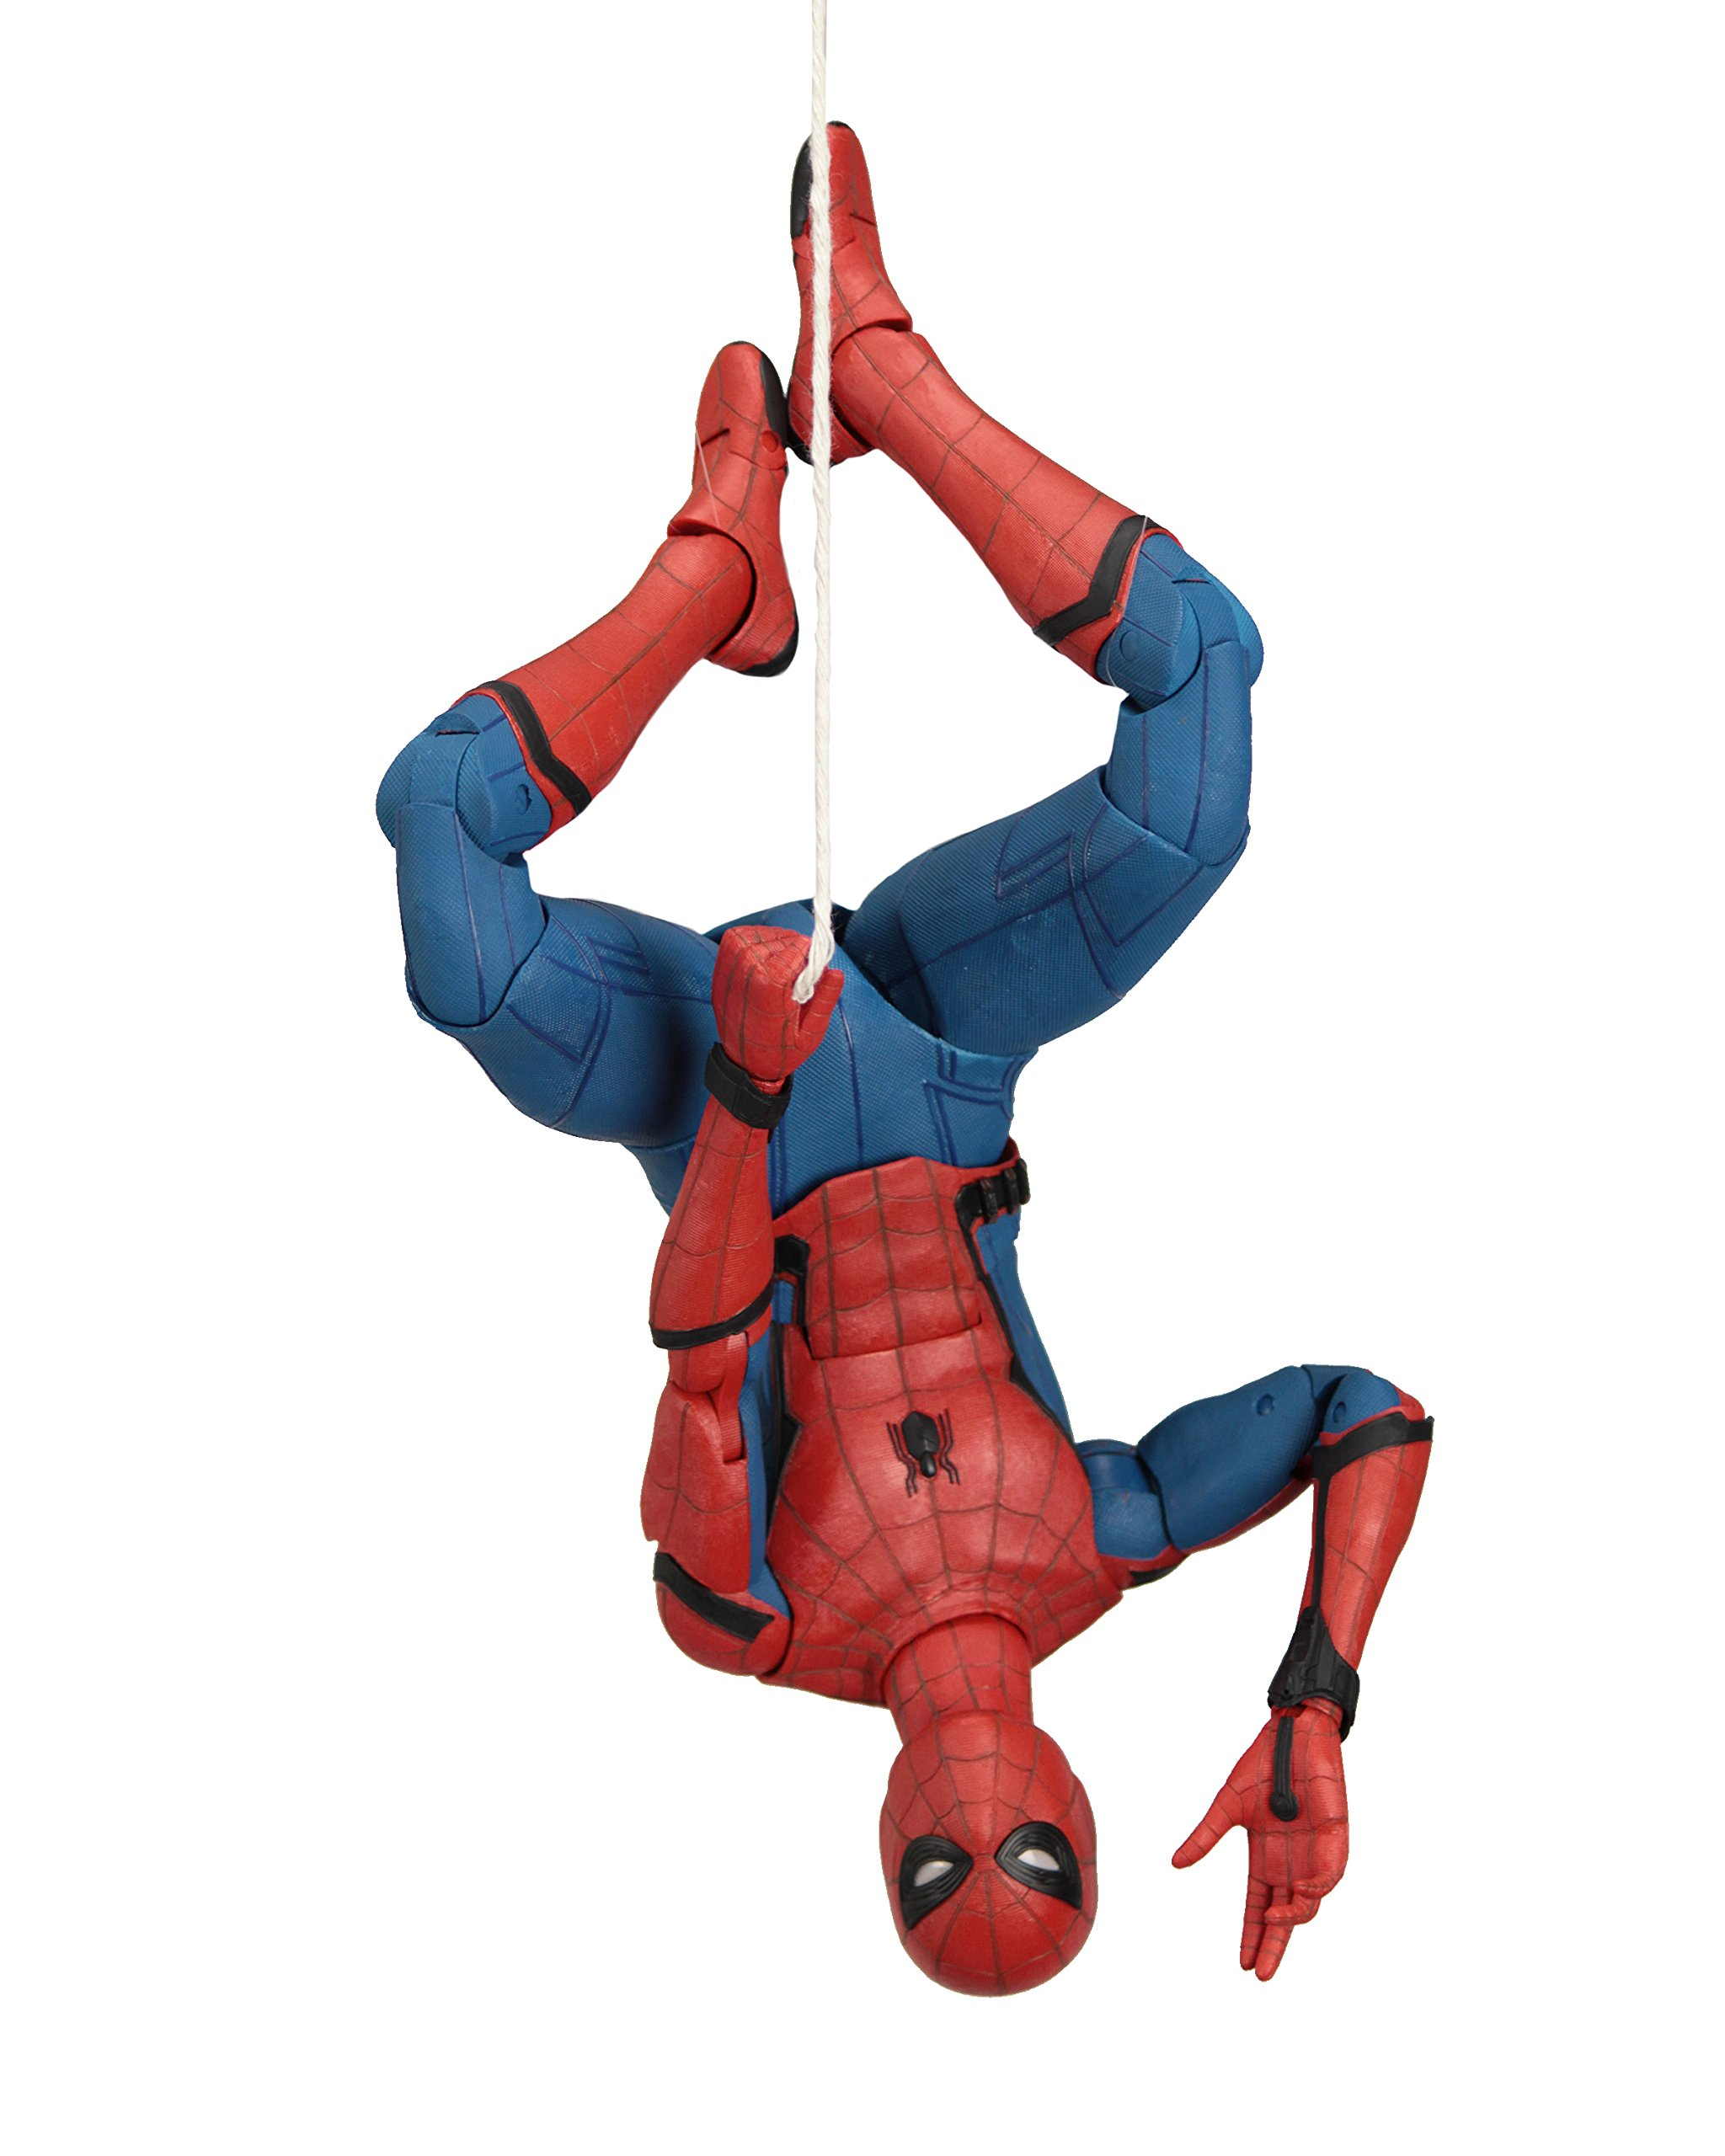 NECA Spider-Man: Homecoming 1/4 Scale Action Figure